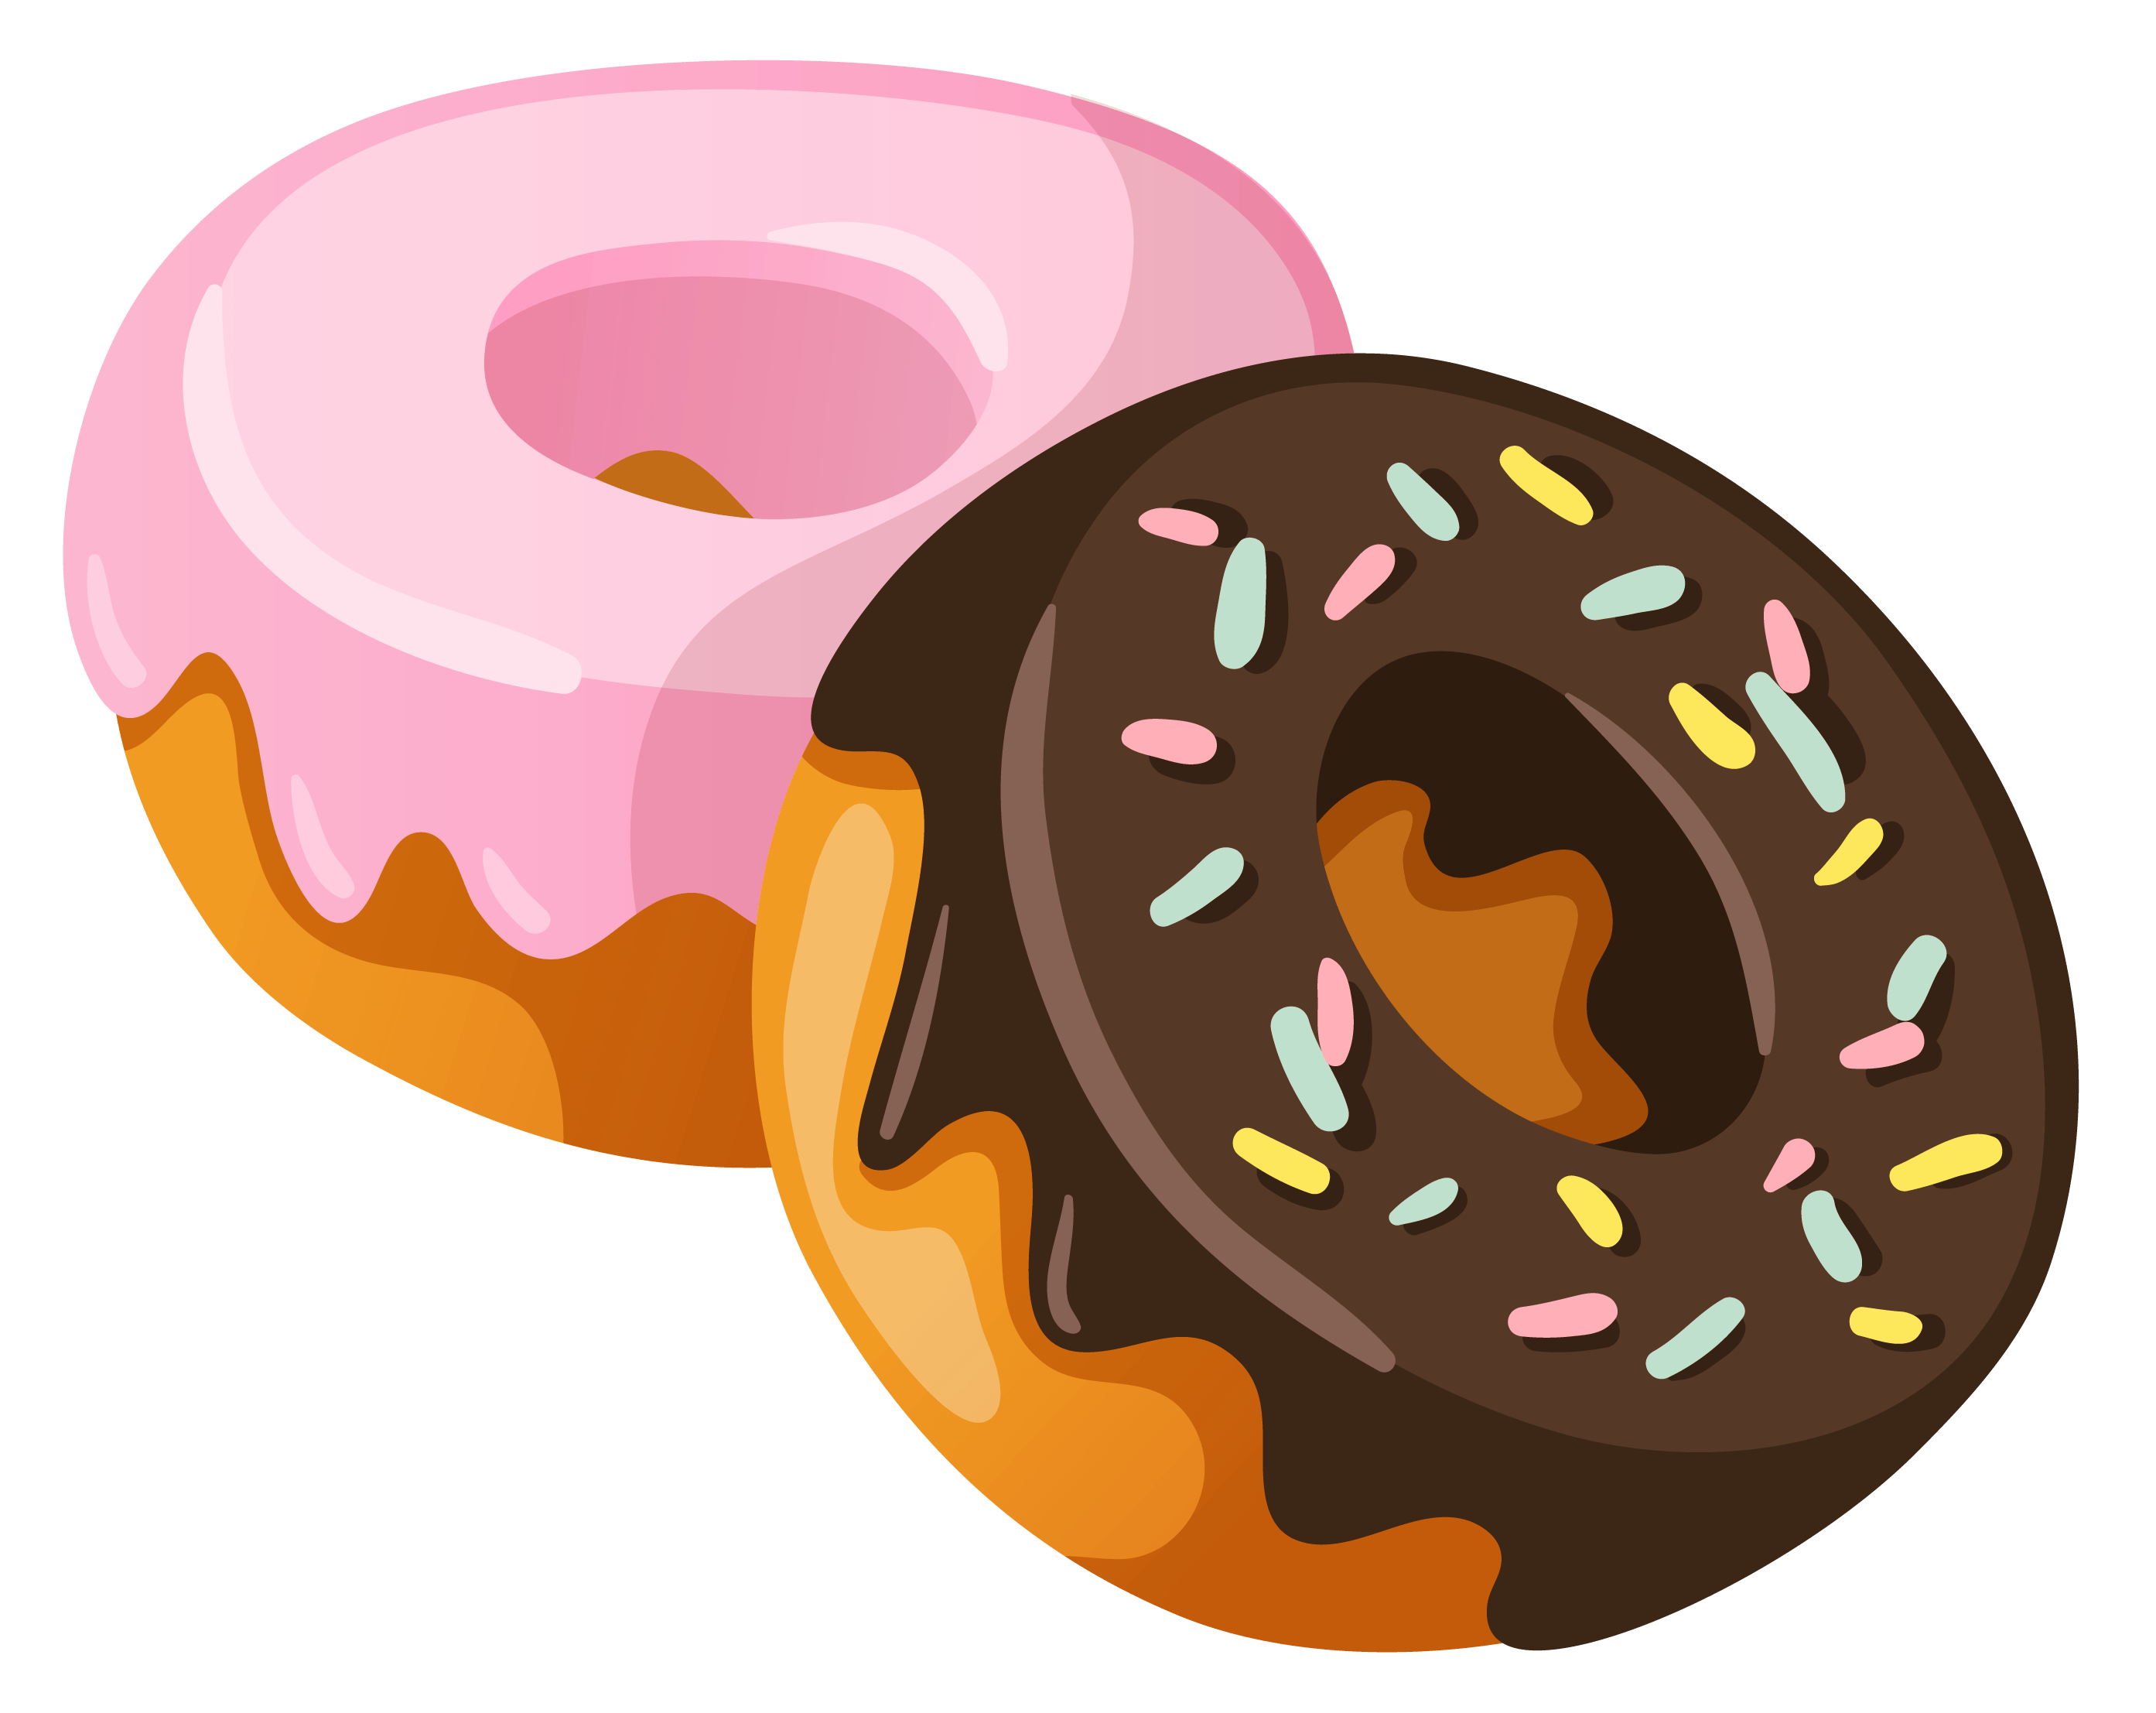 Donuts transparent png stickpng. Clipart coffee clear background